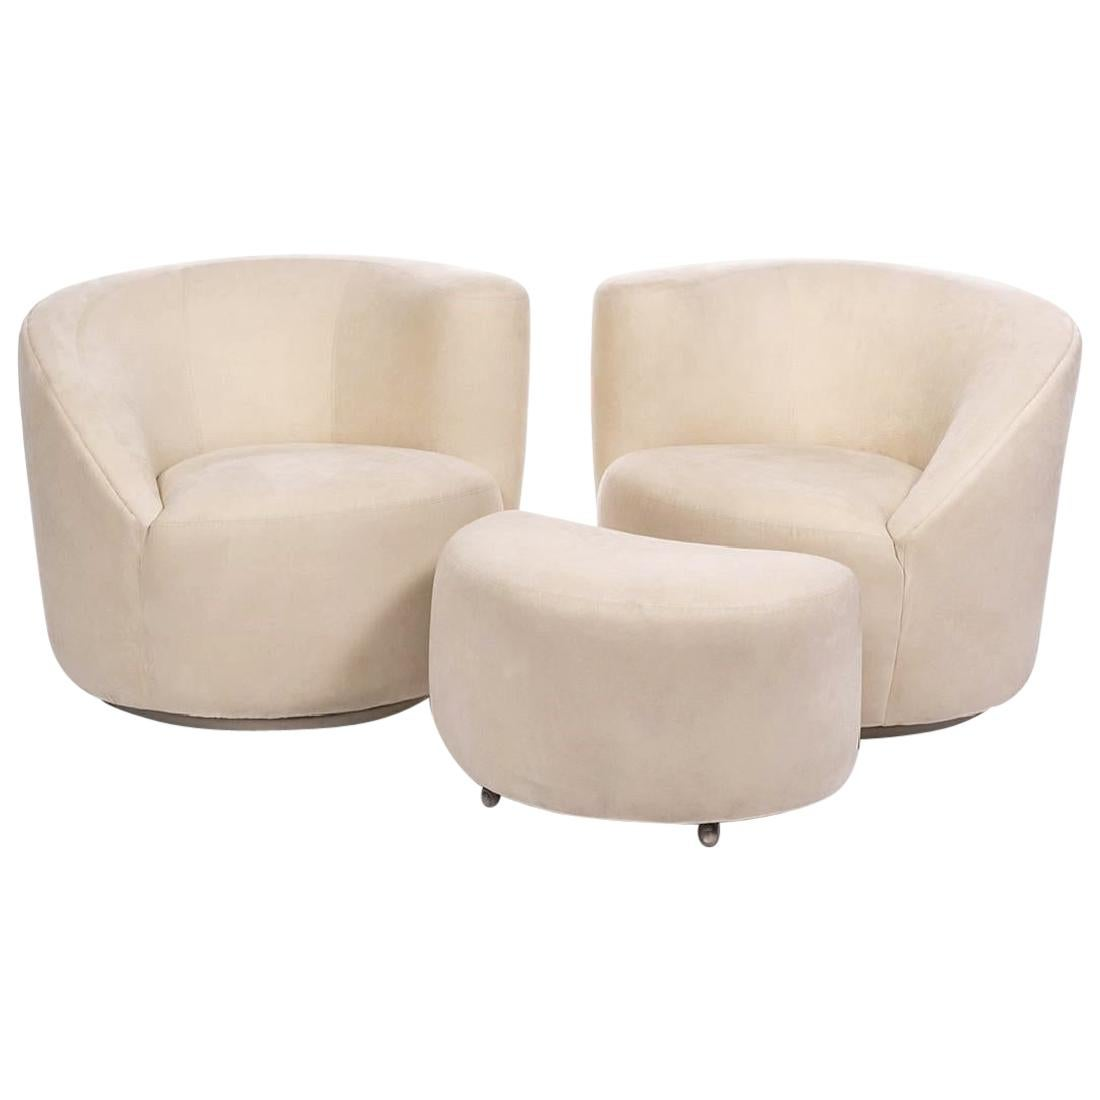 "Vladimir Kagan Nautilus ""Corkscrew"" Swivel Club Chairs and Ottoman"